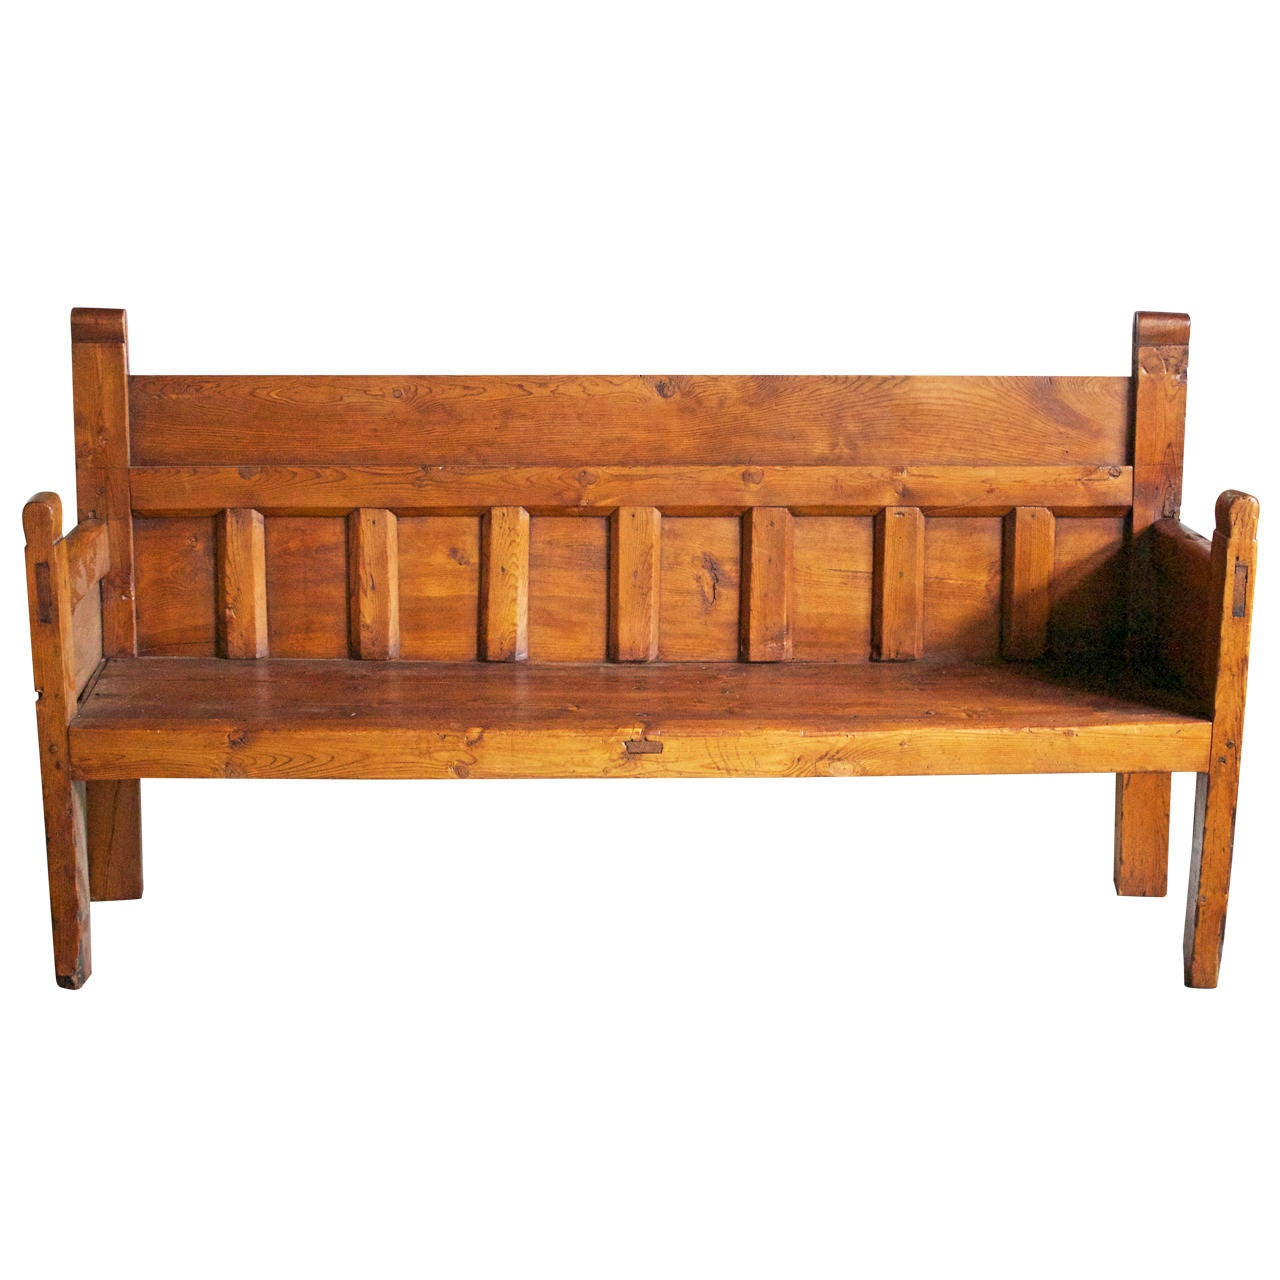 19th Century Large French Country Bench At 1stdibs